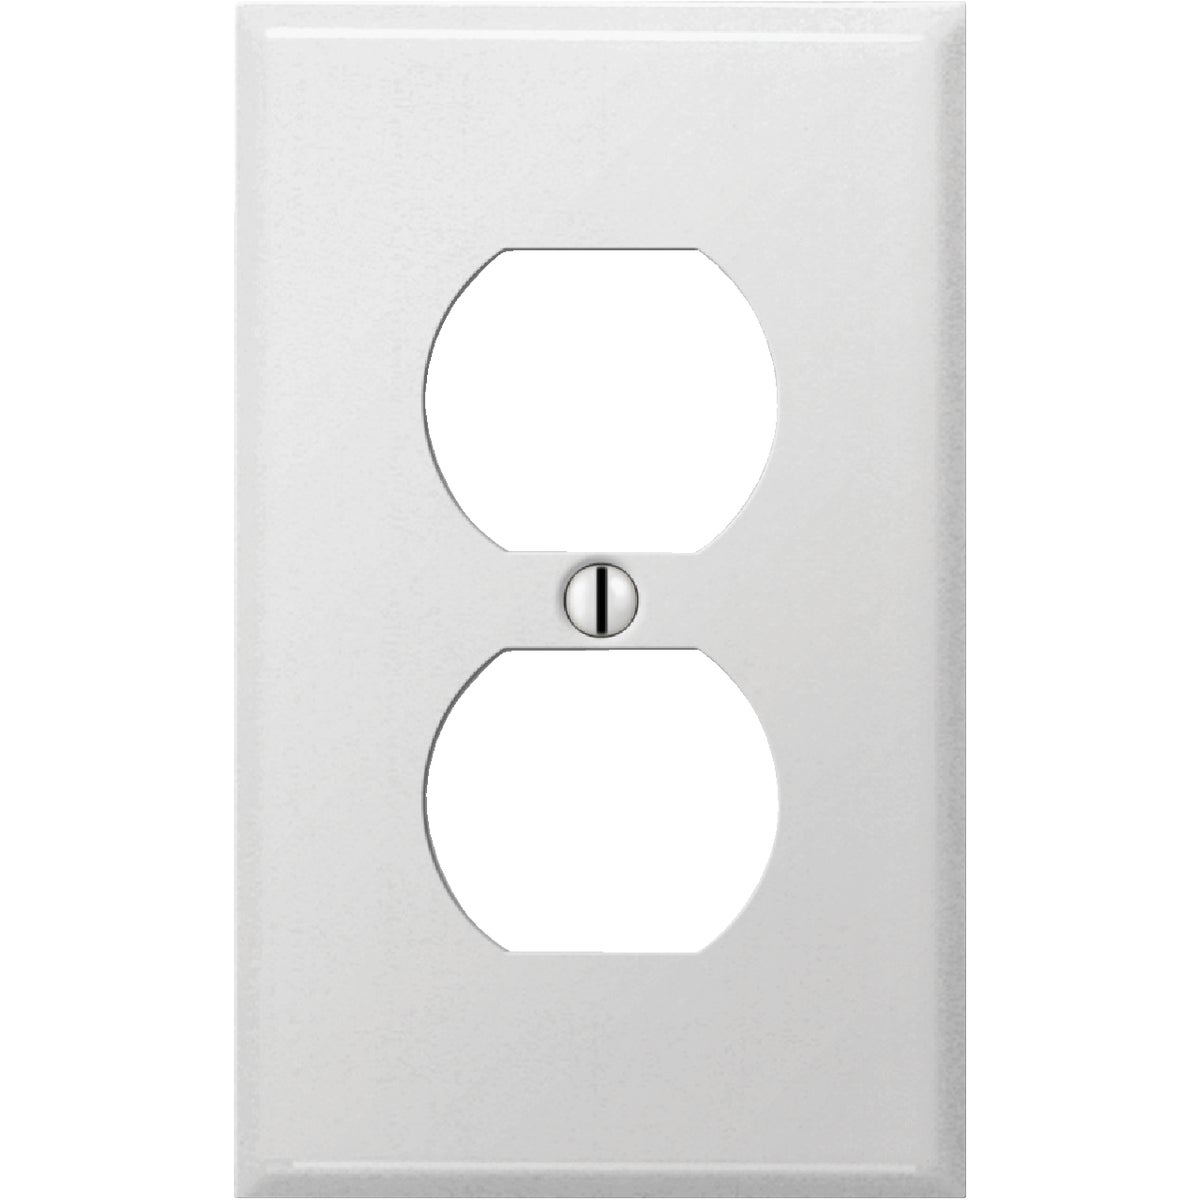 WHT OUTLET WALL PLATE - 8WS108 by Jackson Deerfield Mf